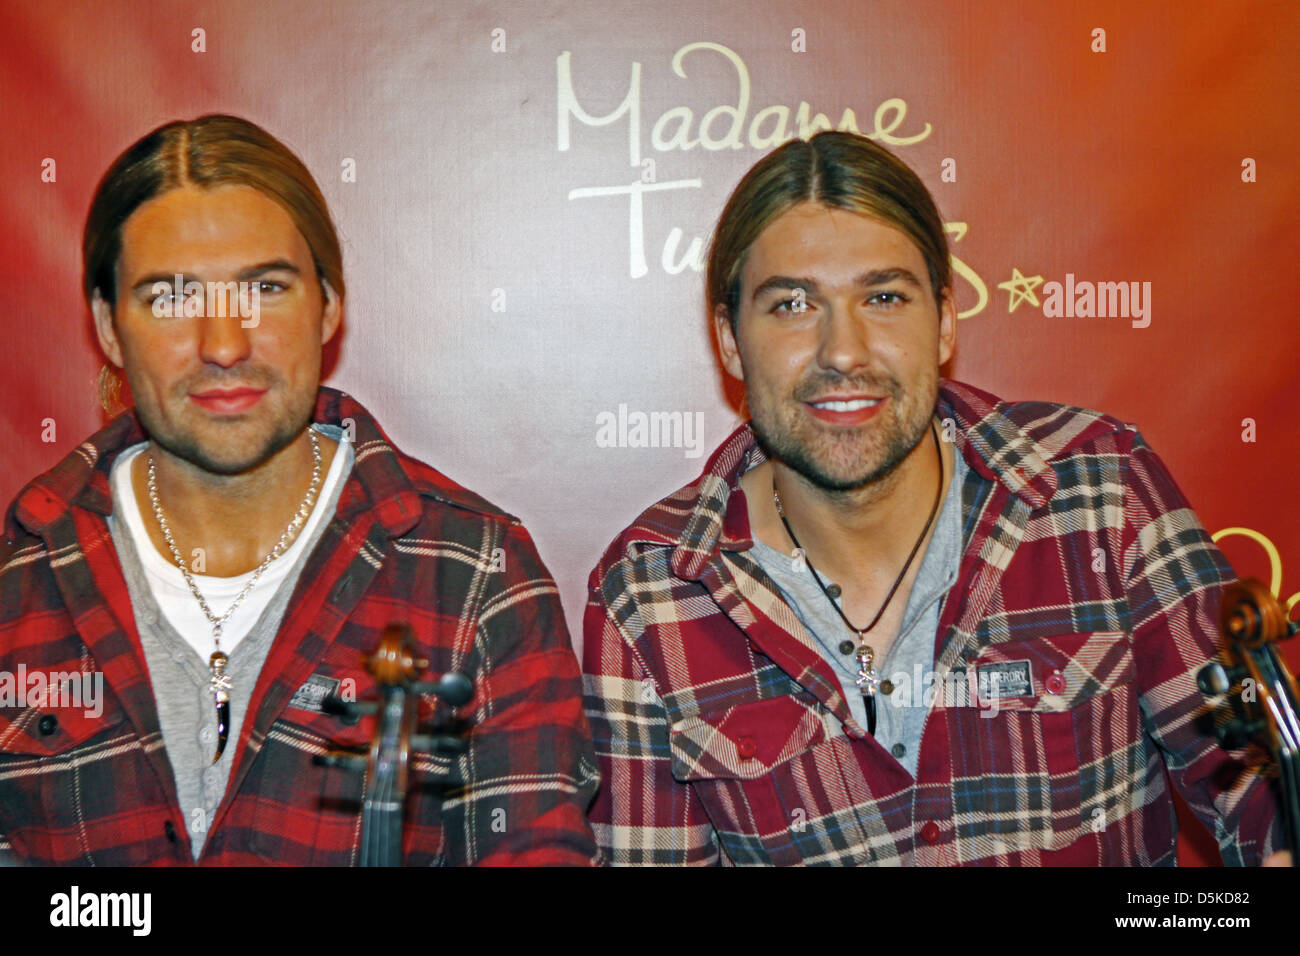 David Garrett unveils his wax figure at Madame Tussauds Berlin. Berlin, Germany - Stock Photo